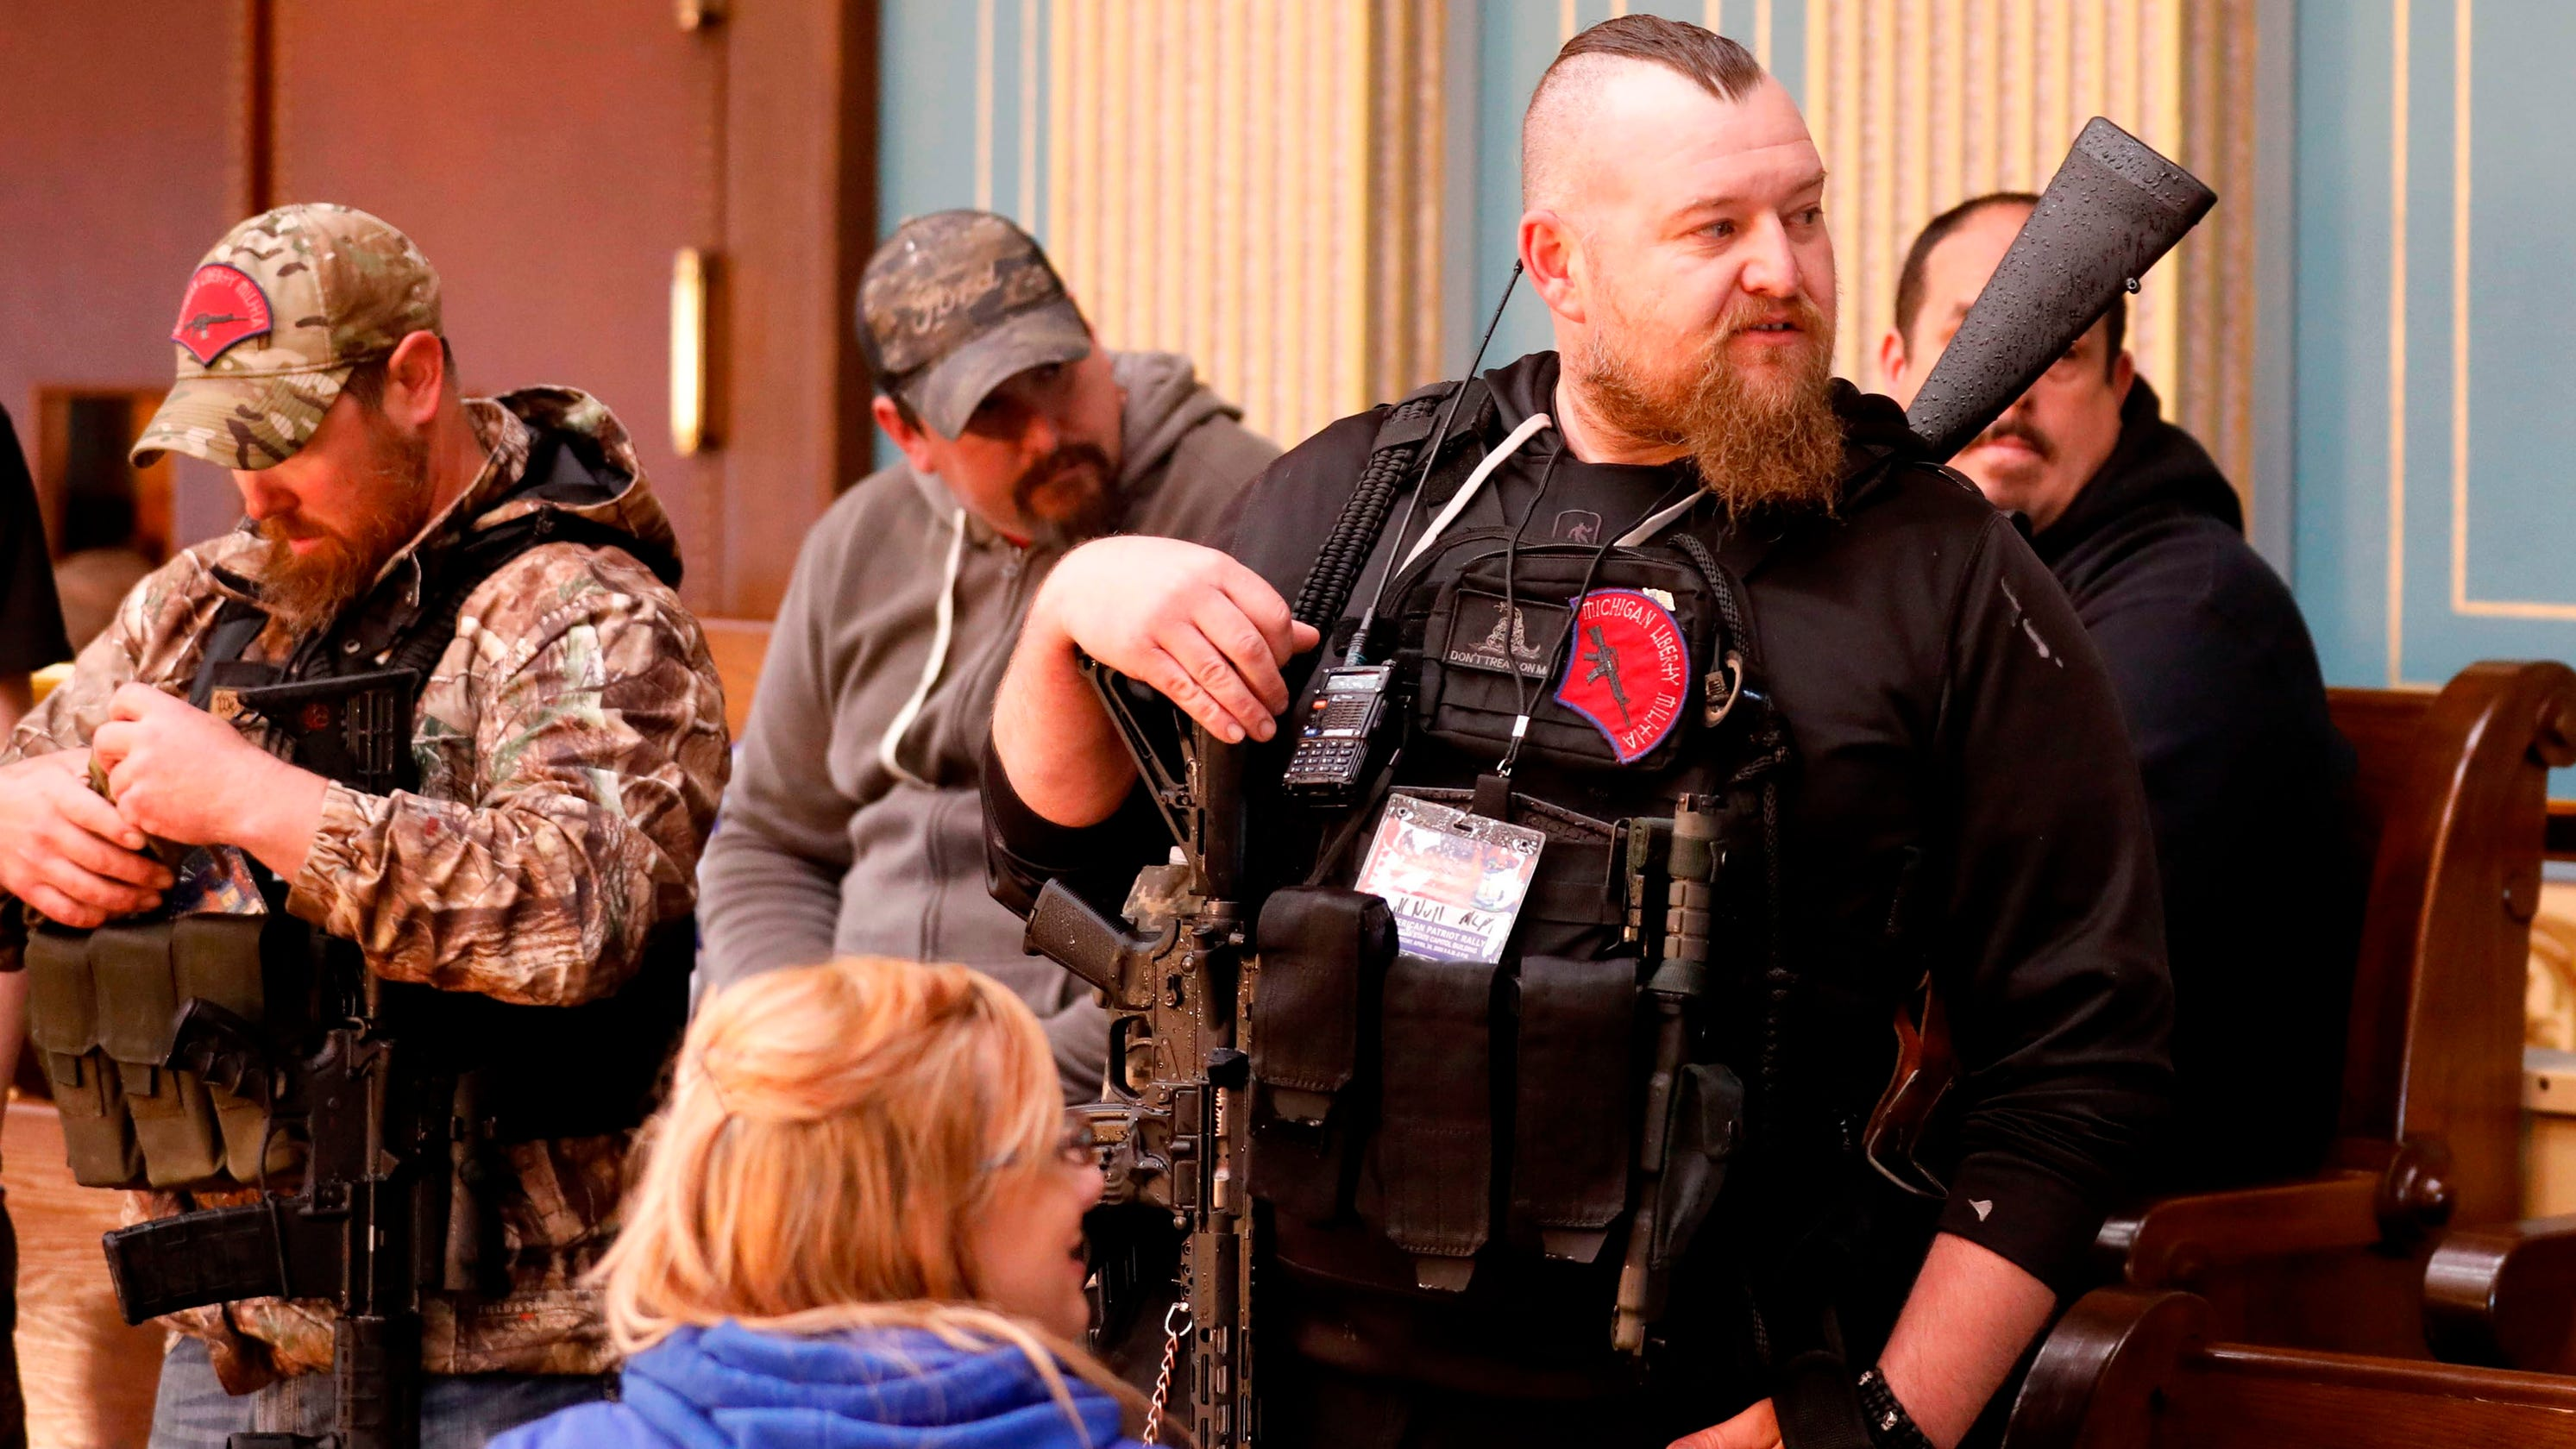 Opinion: Wisconsin should not tolerate illegal private militia groups